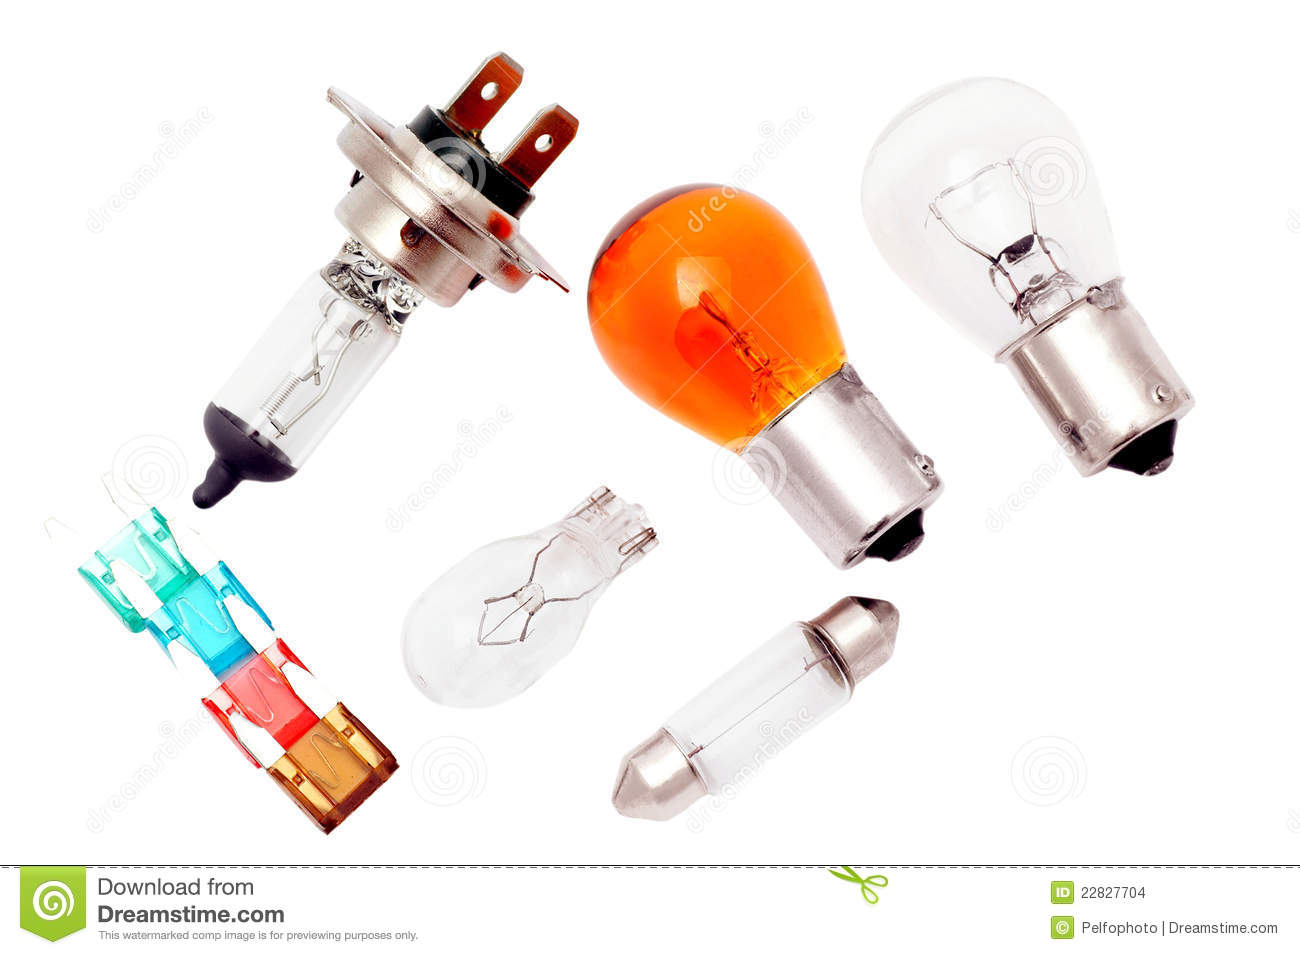 Car bulbs and fuses.